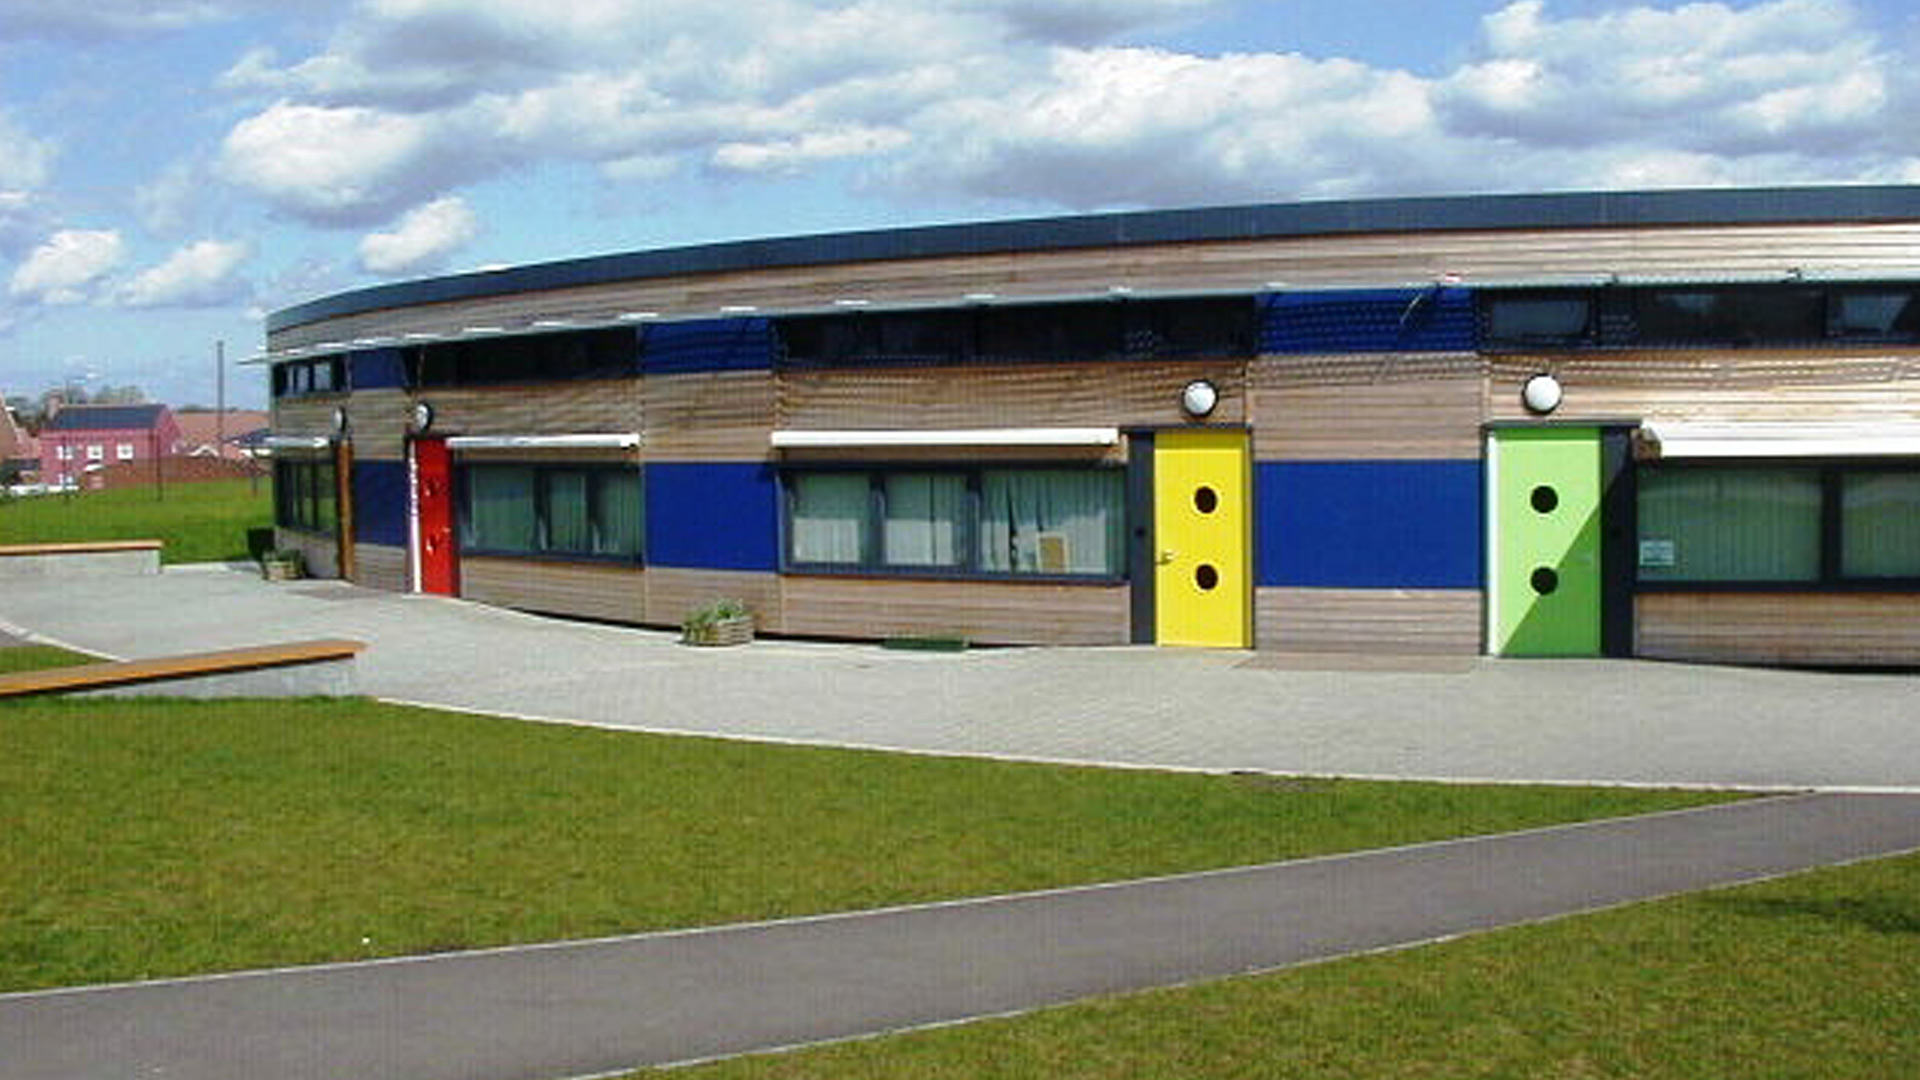 Notley Green Primary School